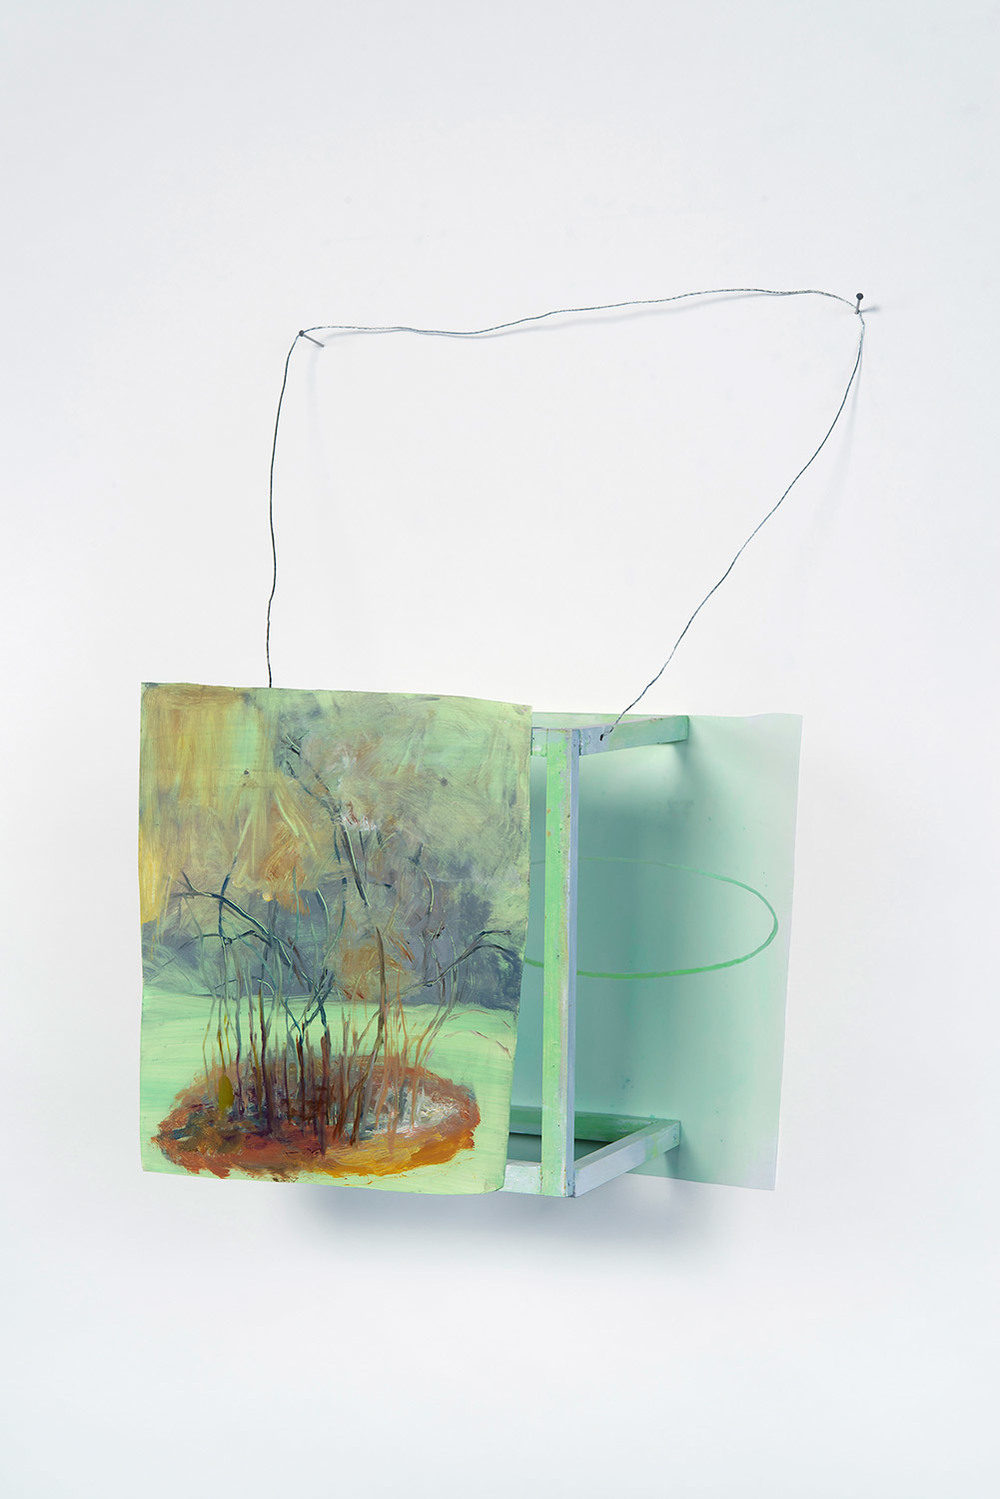 Possibly Now III   Oil on plastic and wood, wire 21 × 13 × 6.5 inches 53 × 33 × 16 cm 2013